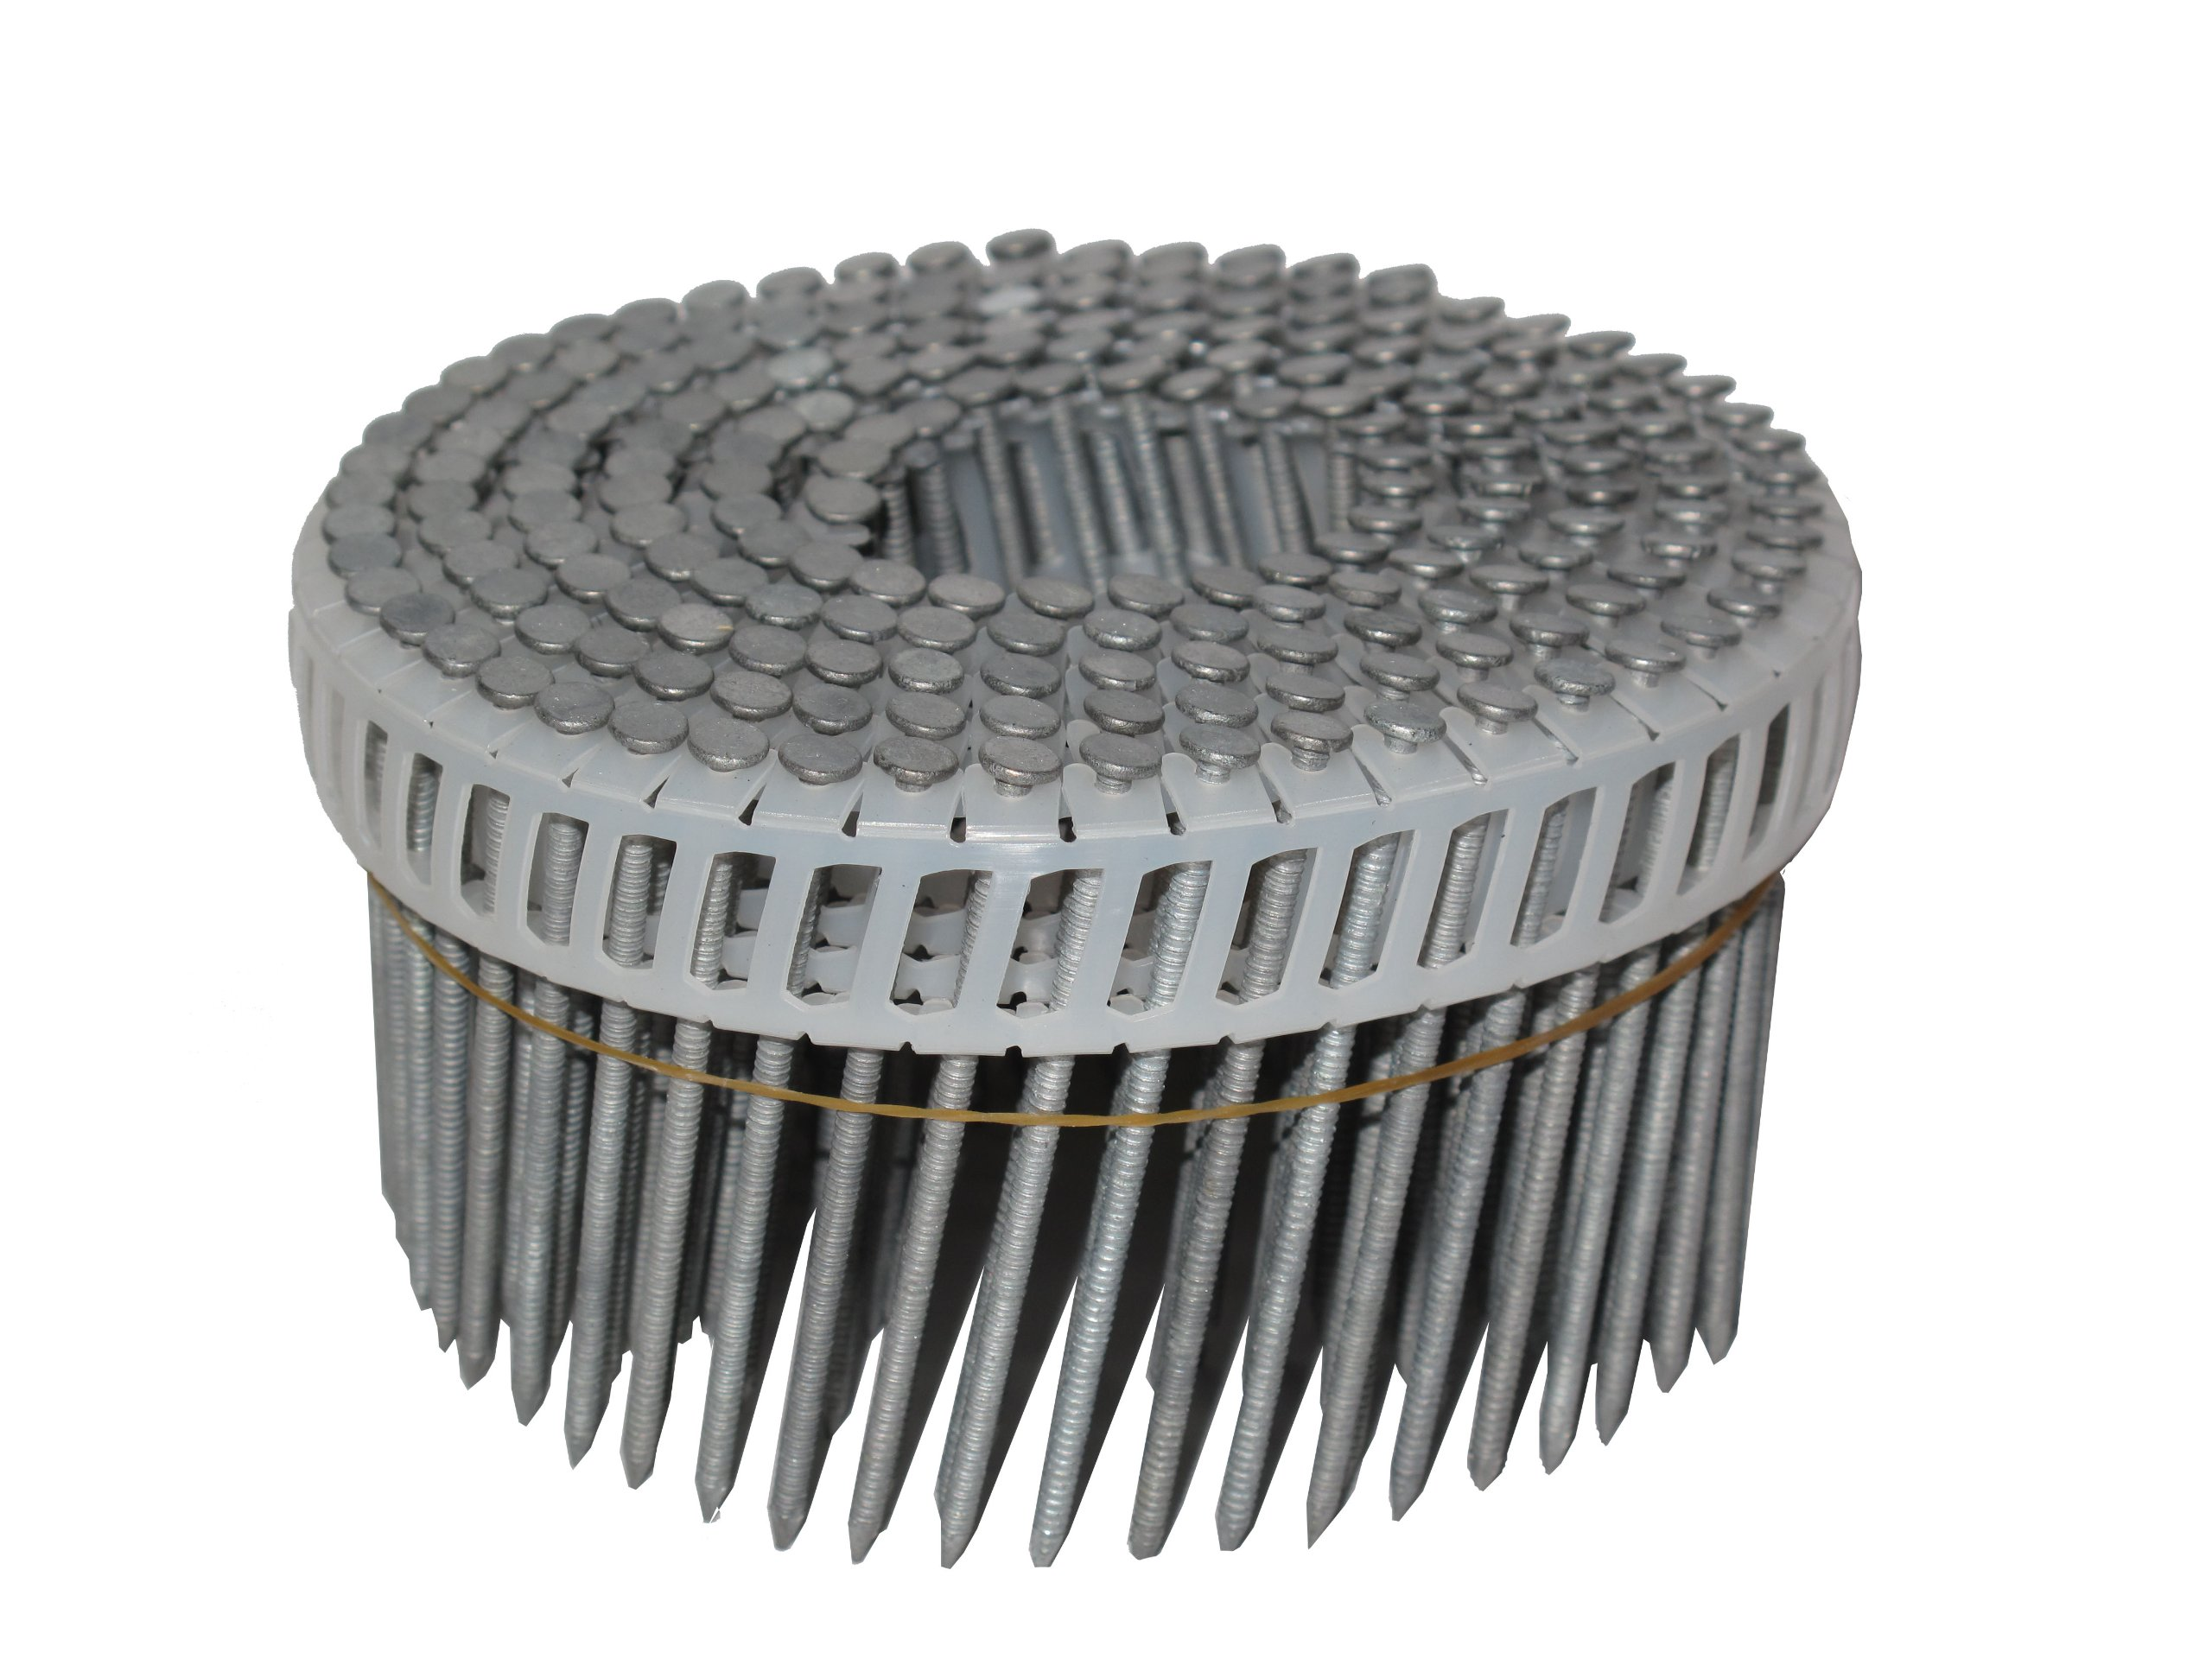 Simpson Swan Secure S13A250IPWBP 2-1/2-Inch by 0.090 Ring Shank Insert Plastic Collation 15-Degree White Head T-304 Stainless Steel Coil Siding Nails